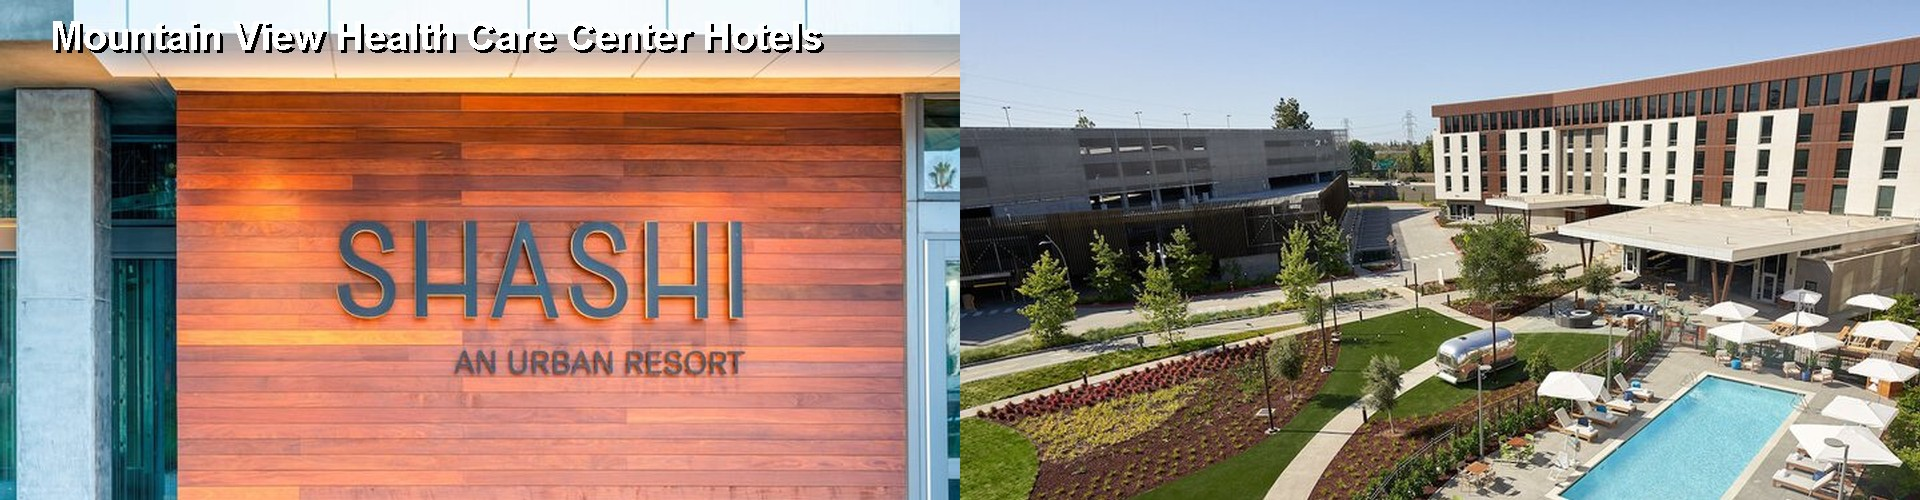 5 Best Hotels near Mountain View Health Care Center